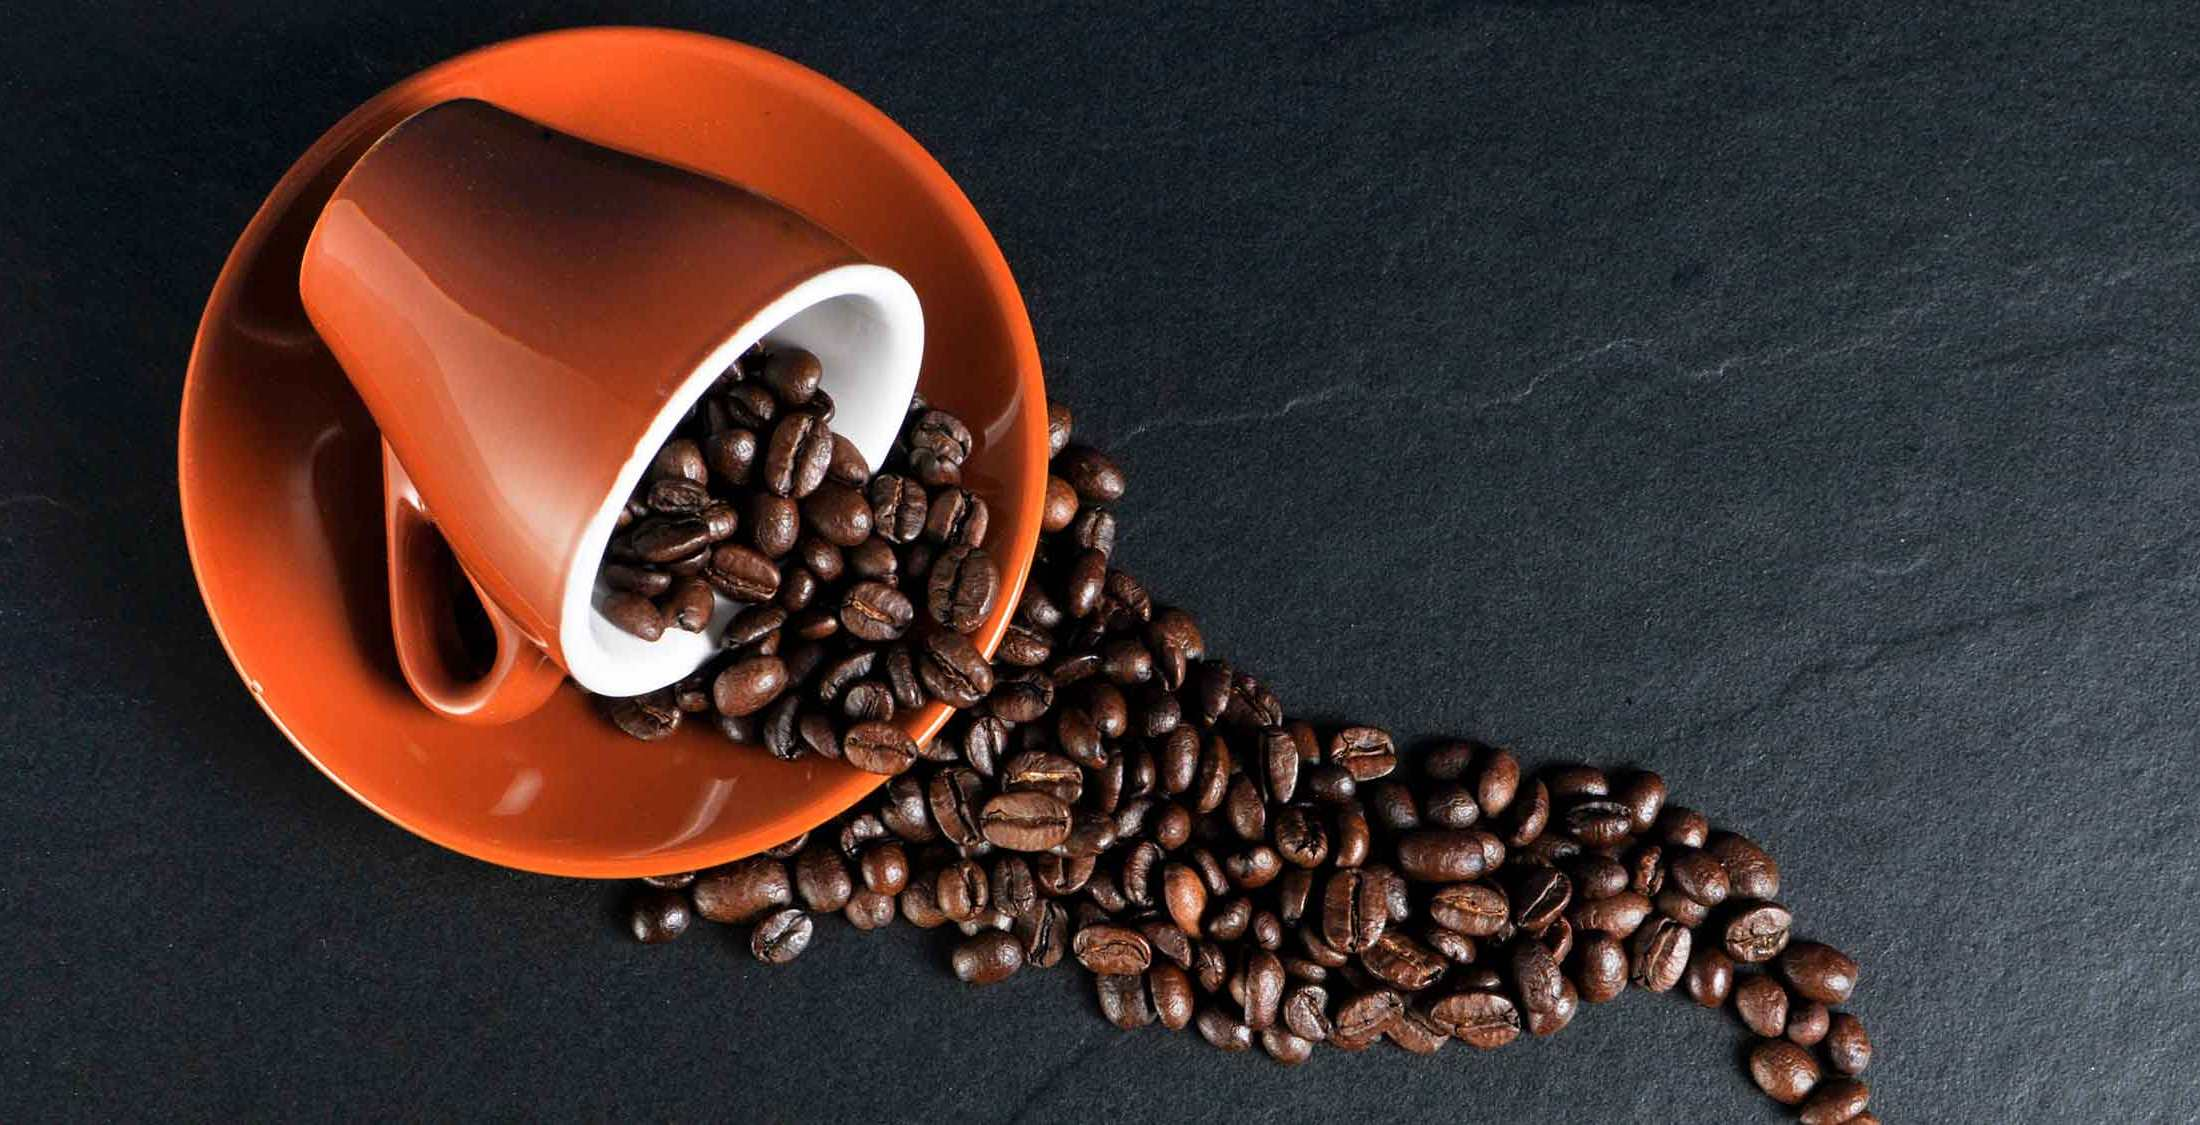 Does caffeine actually boost performance?